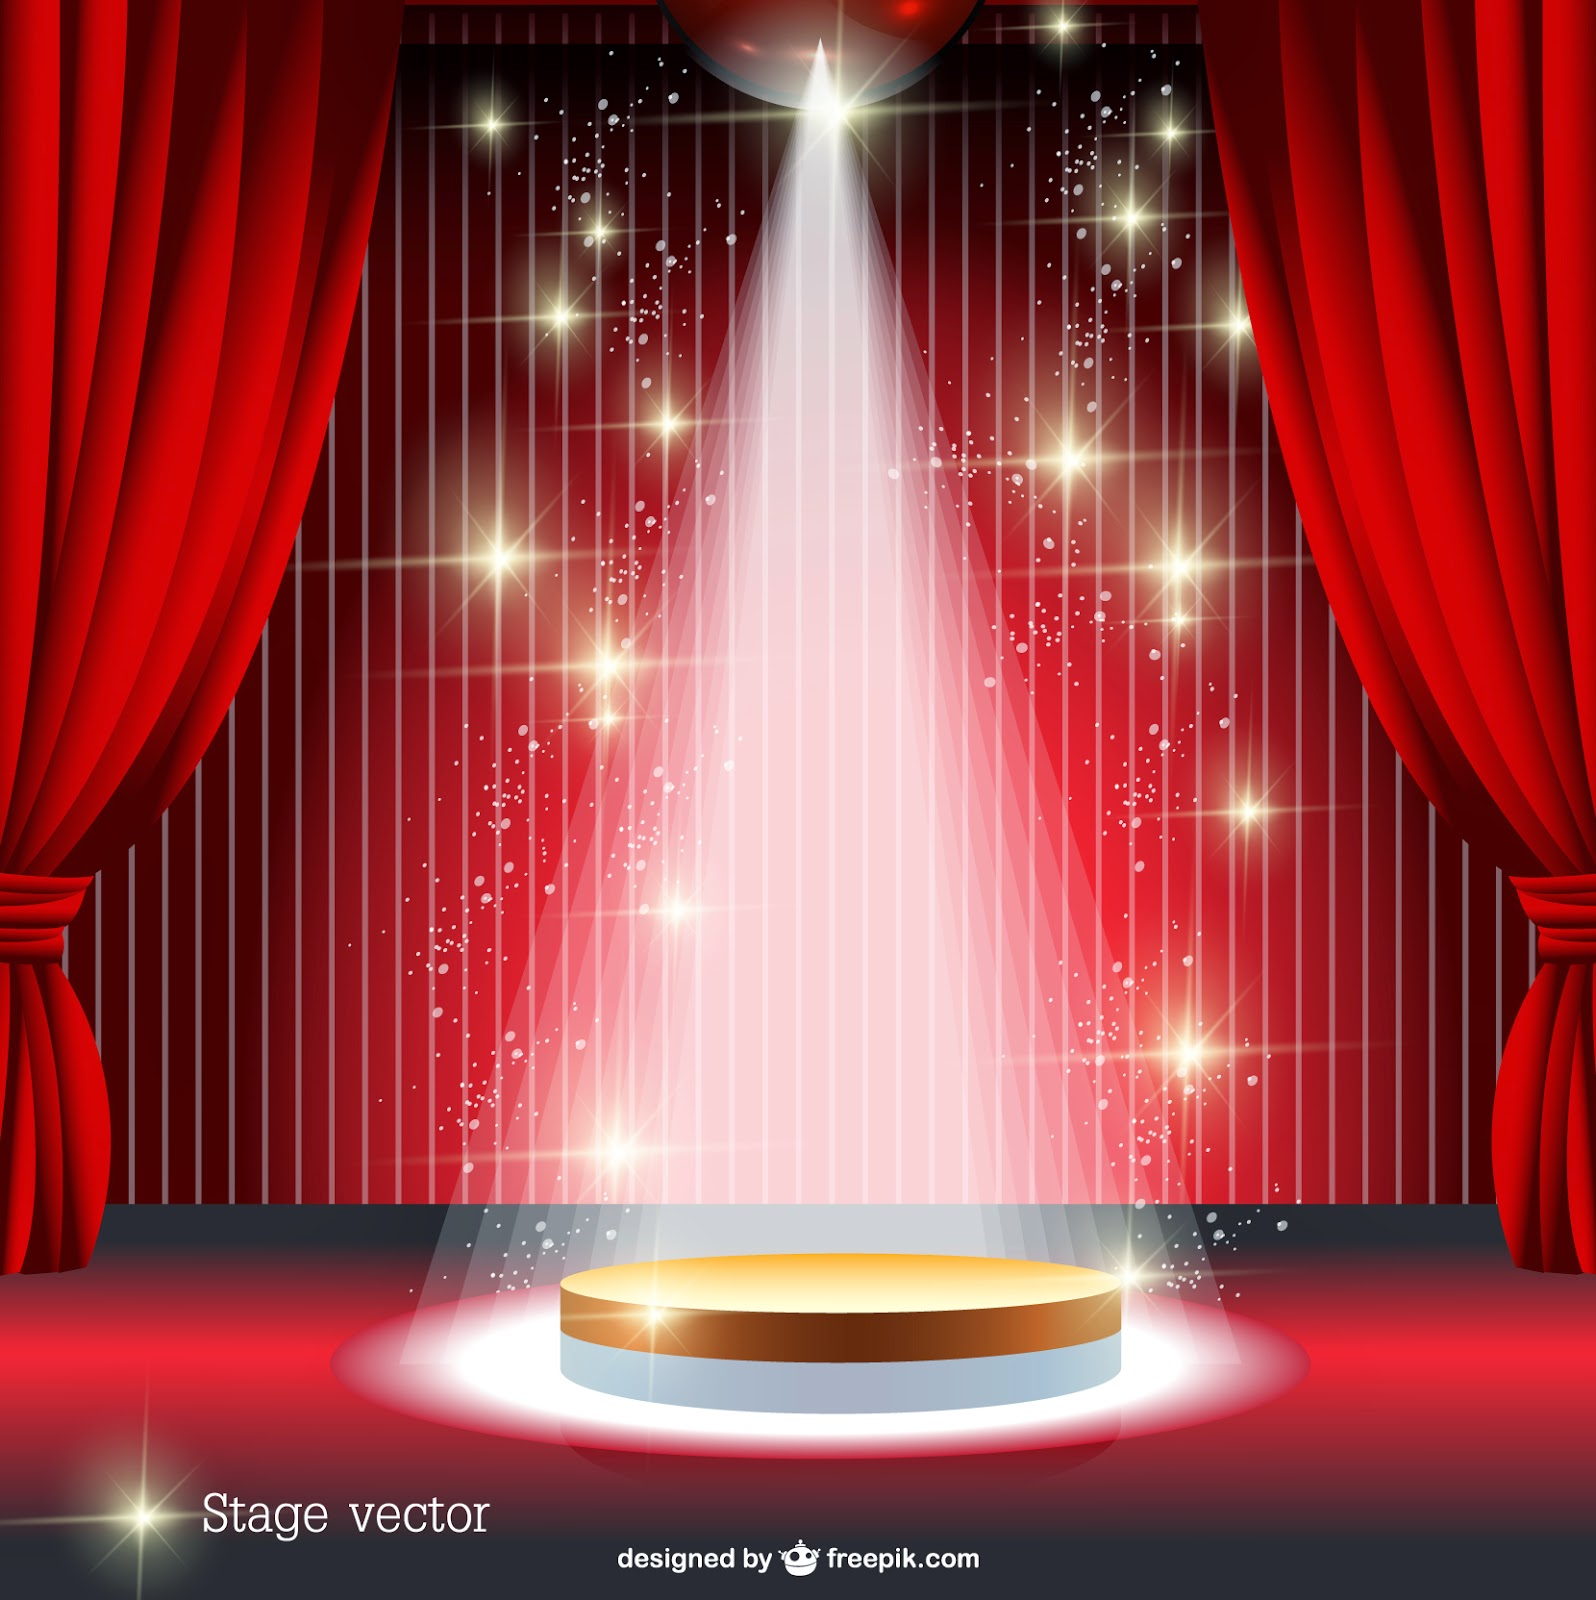 Red Curtain Spotlight Stage 715698 additionally Diy Supergirl Costume Ideas From Cbs Supergirl in addition 1st Place Trophy Transparent   Clip Art Image as well Tile furthermore See The Witch. on oscar award transparent